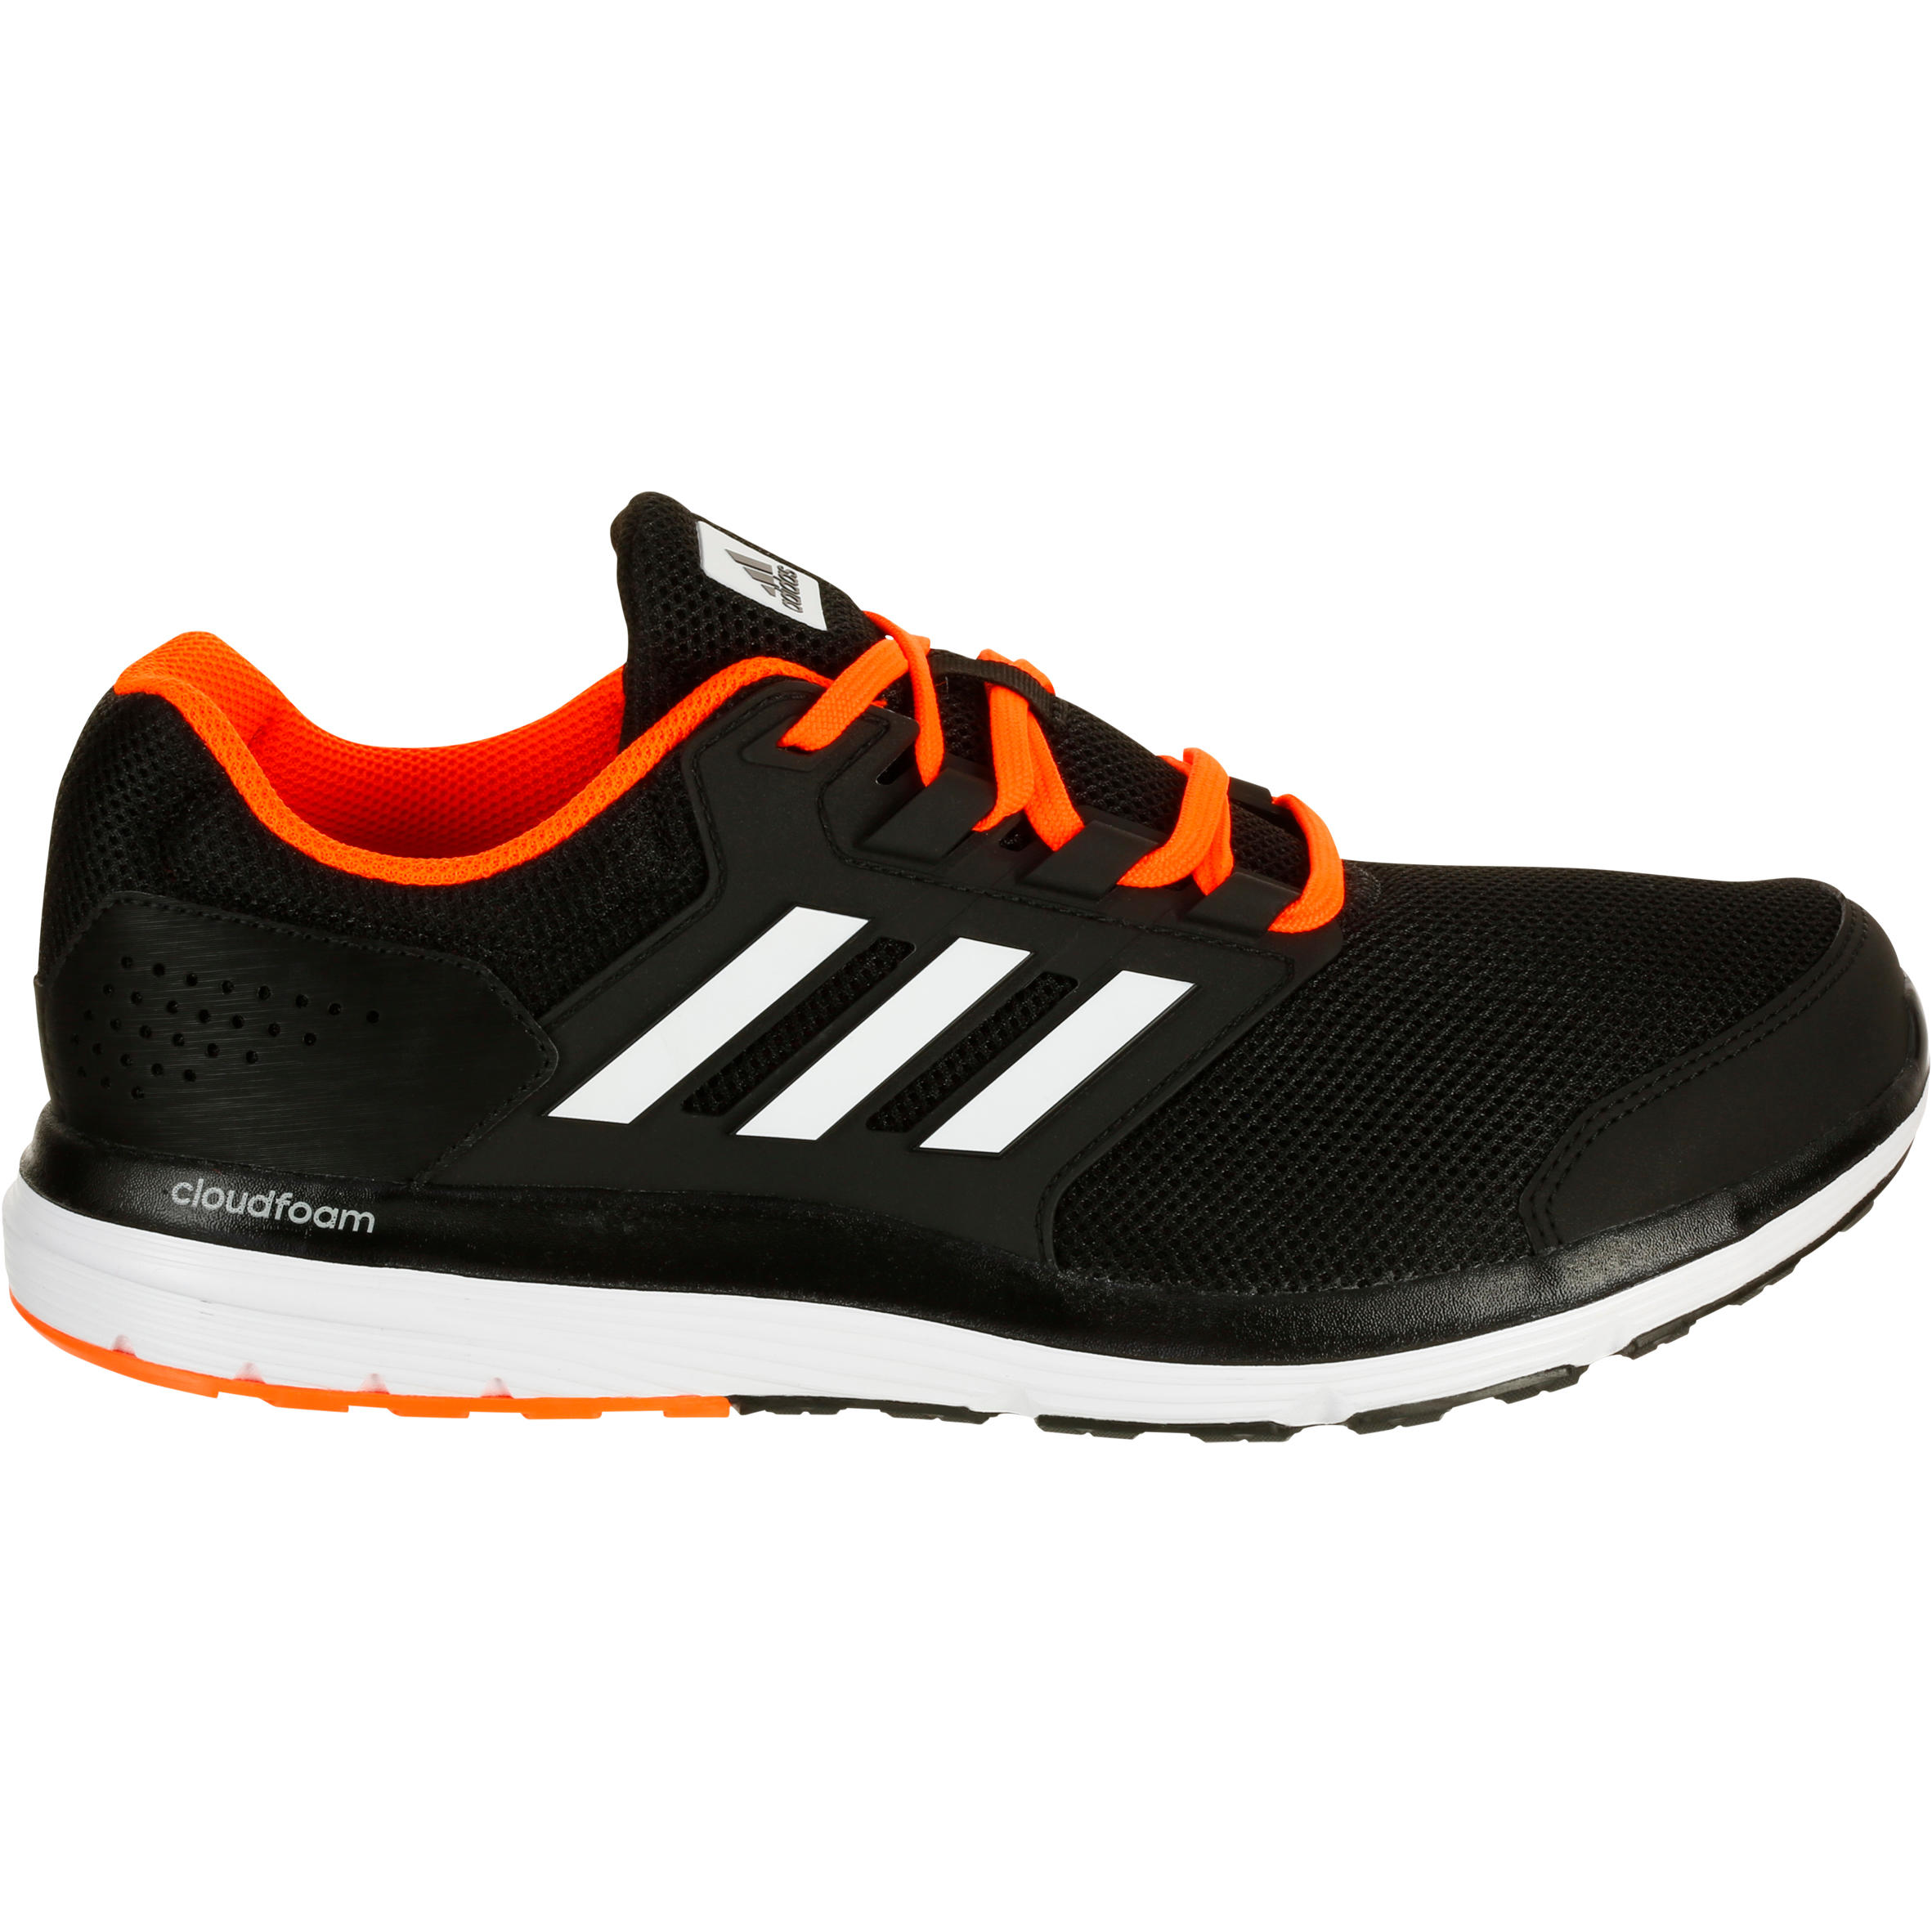 Chaussures Course 4 Noir Adidas Galaxy A Jogging Homme Pied XiTOZkPu